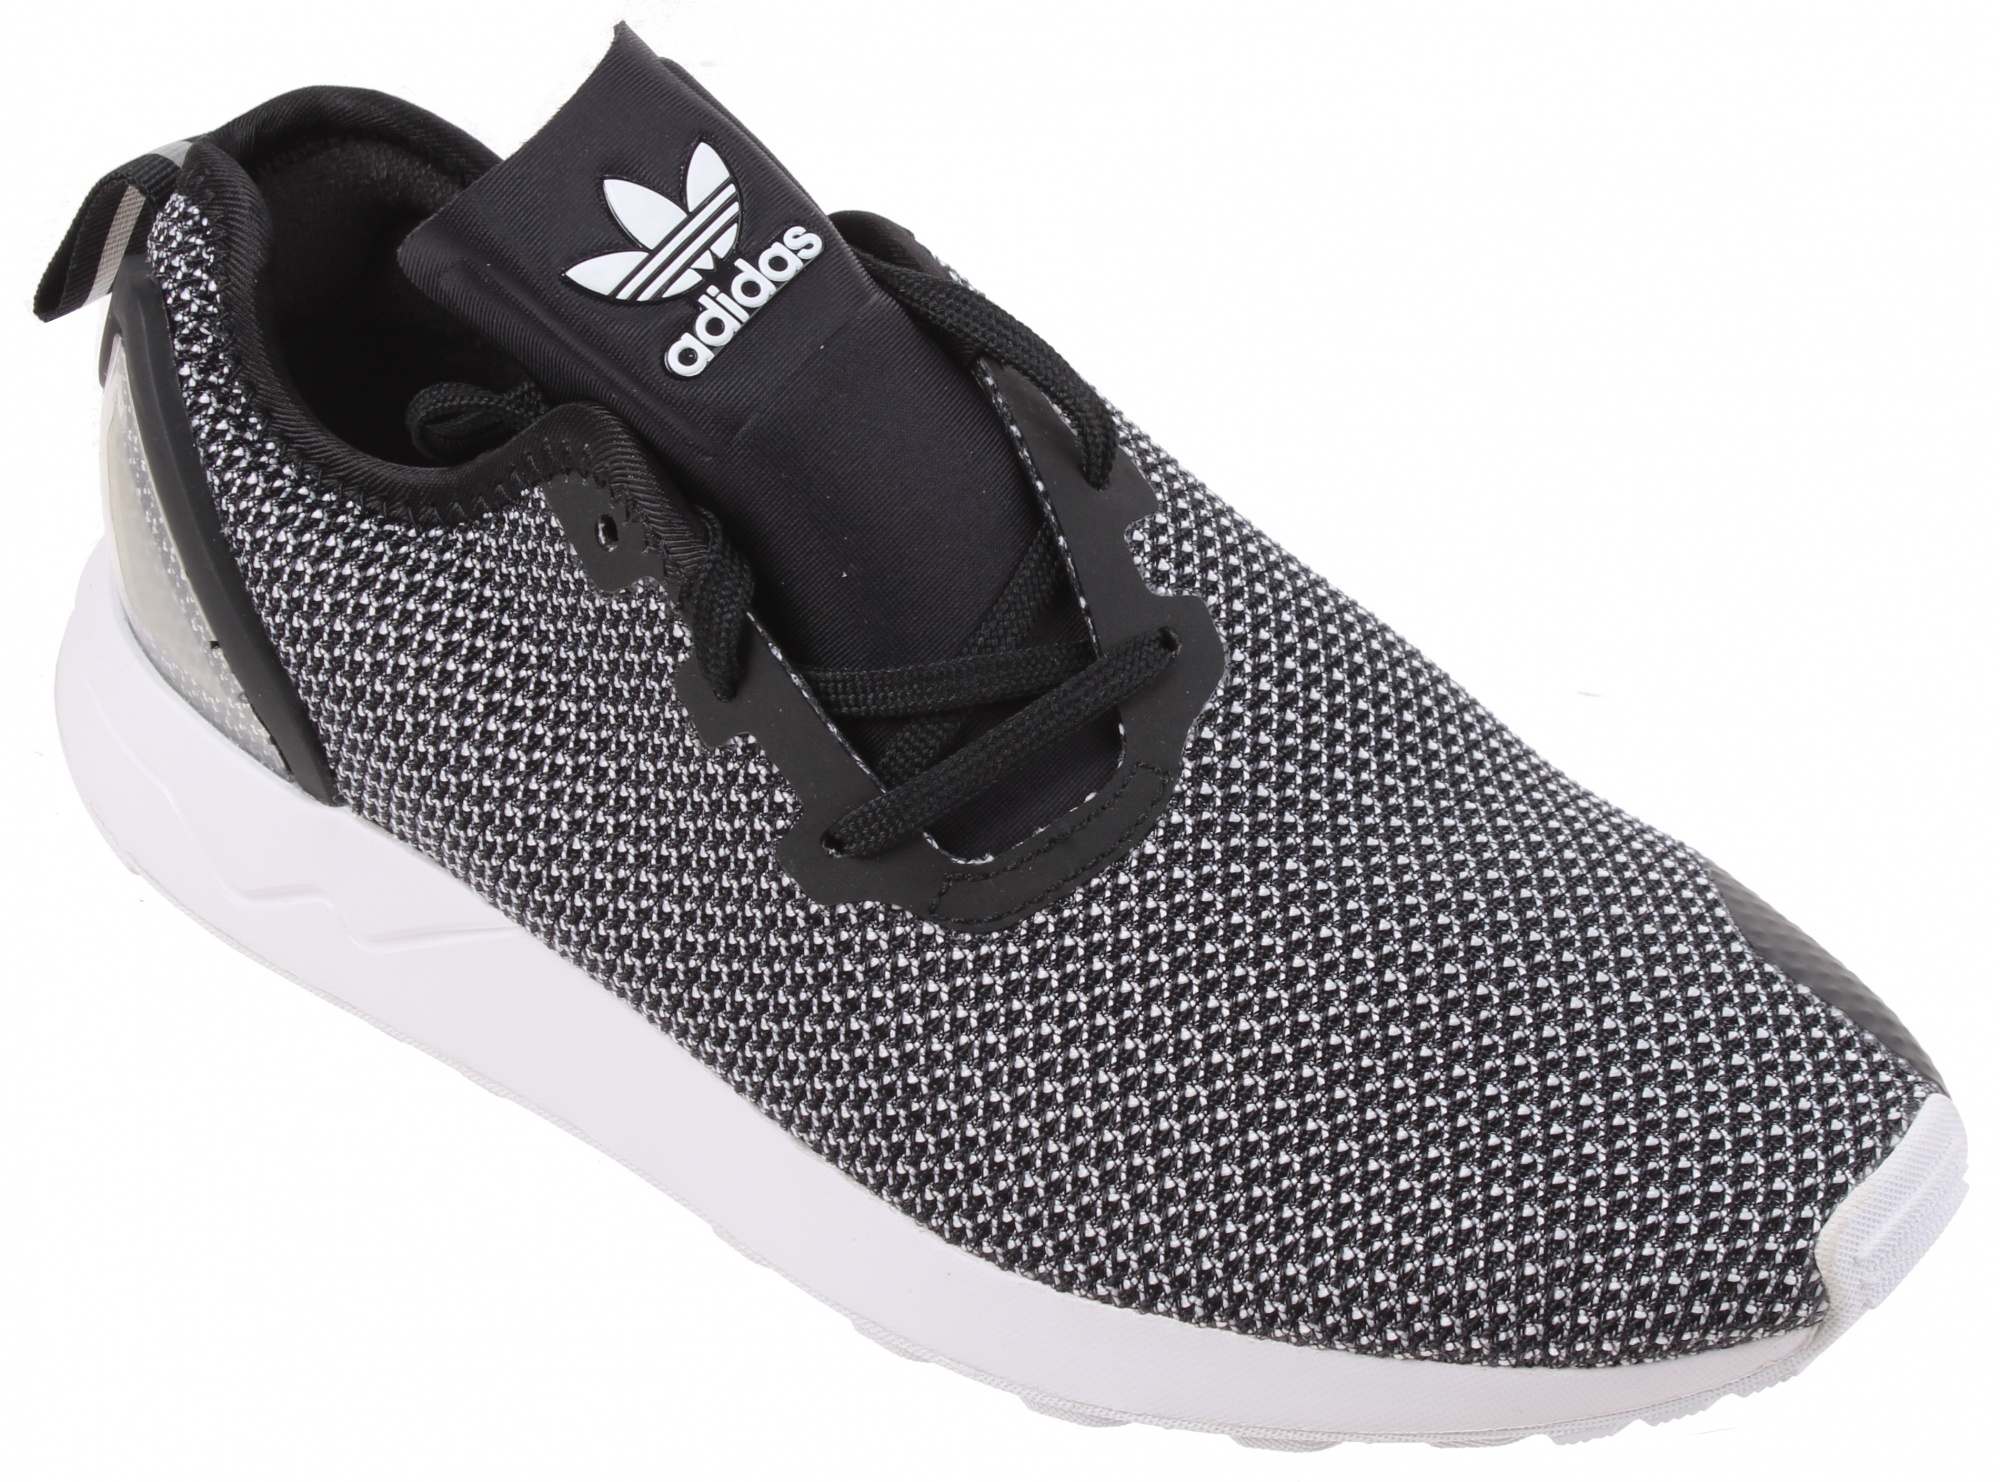 quality design 05bfc b90cc adidas sneakers ZX Flux ADV Asym men s black white